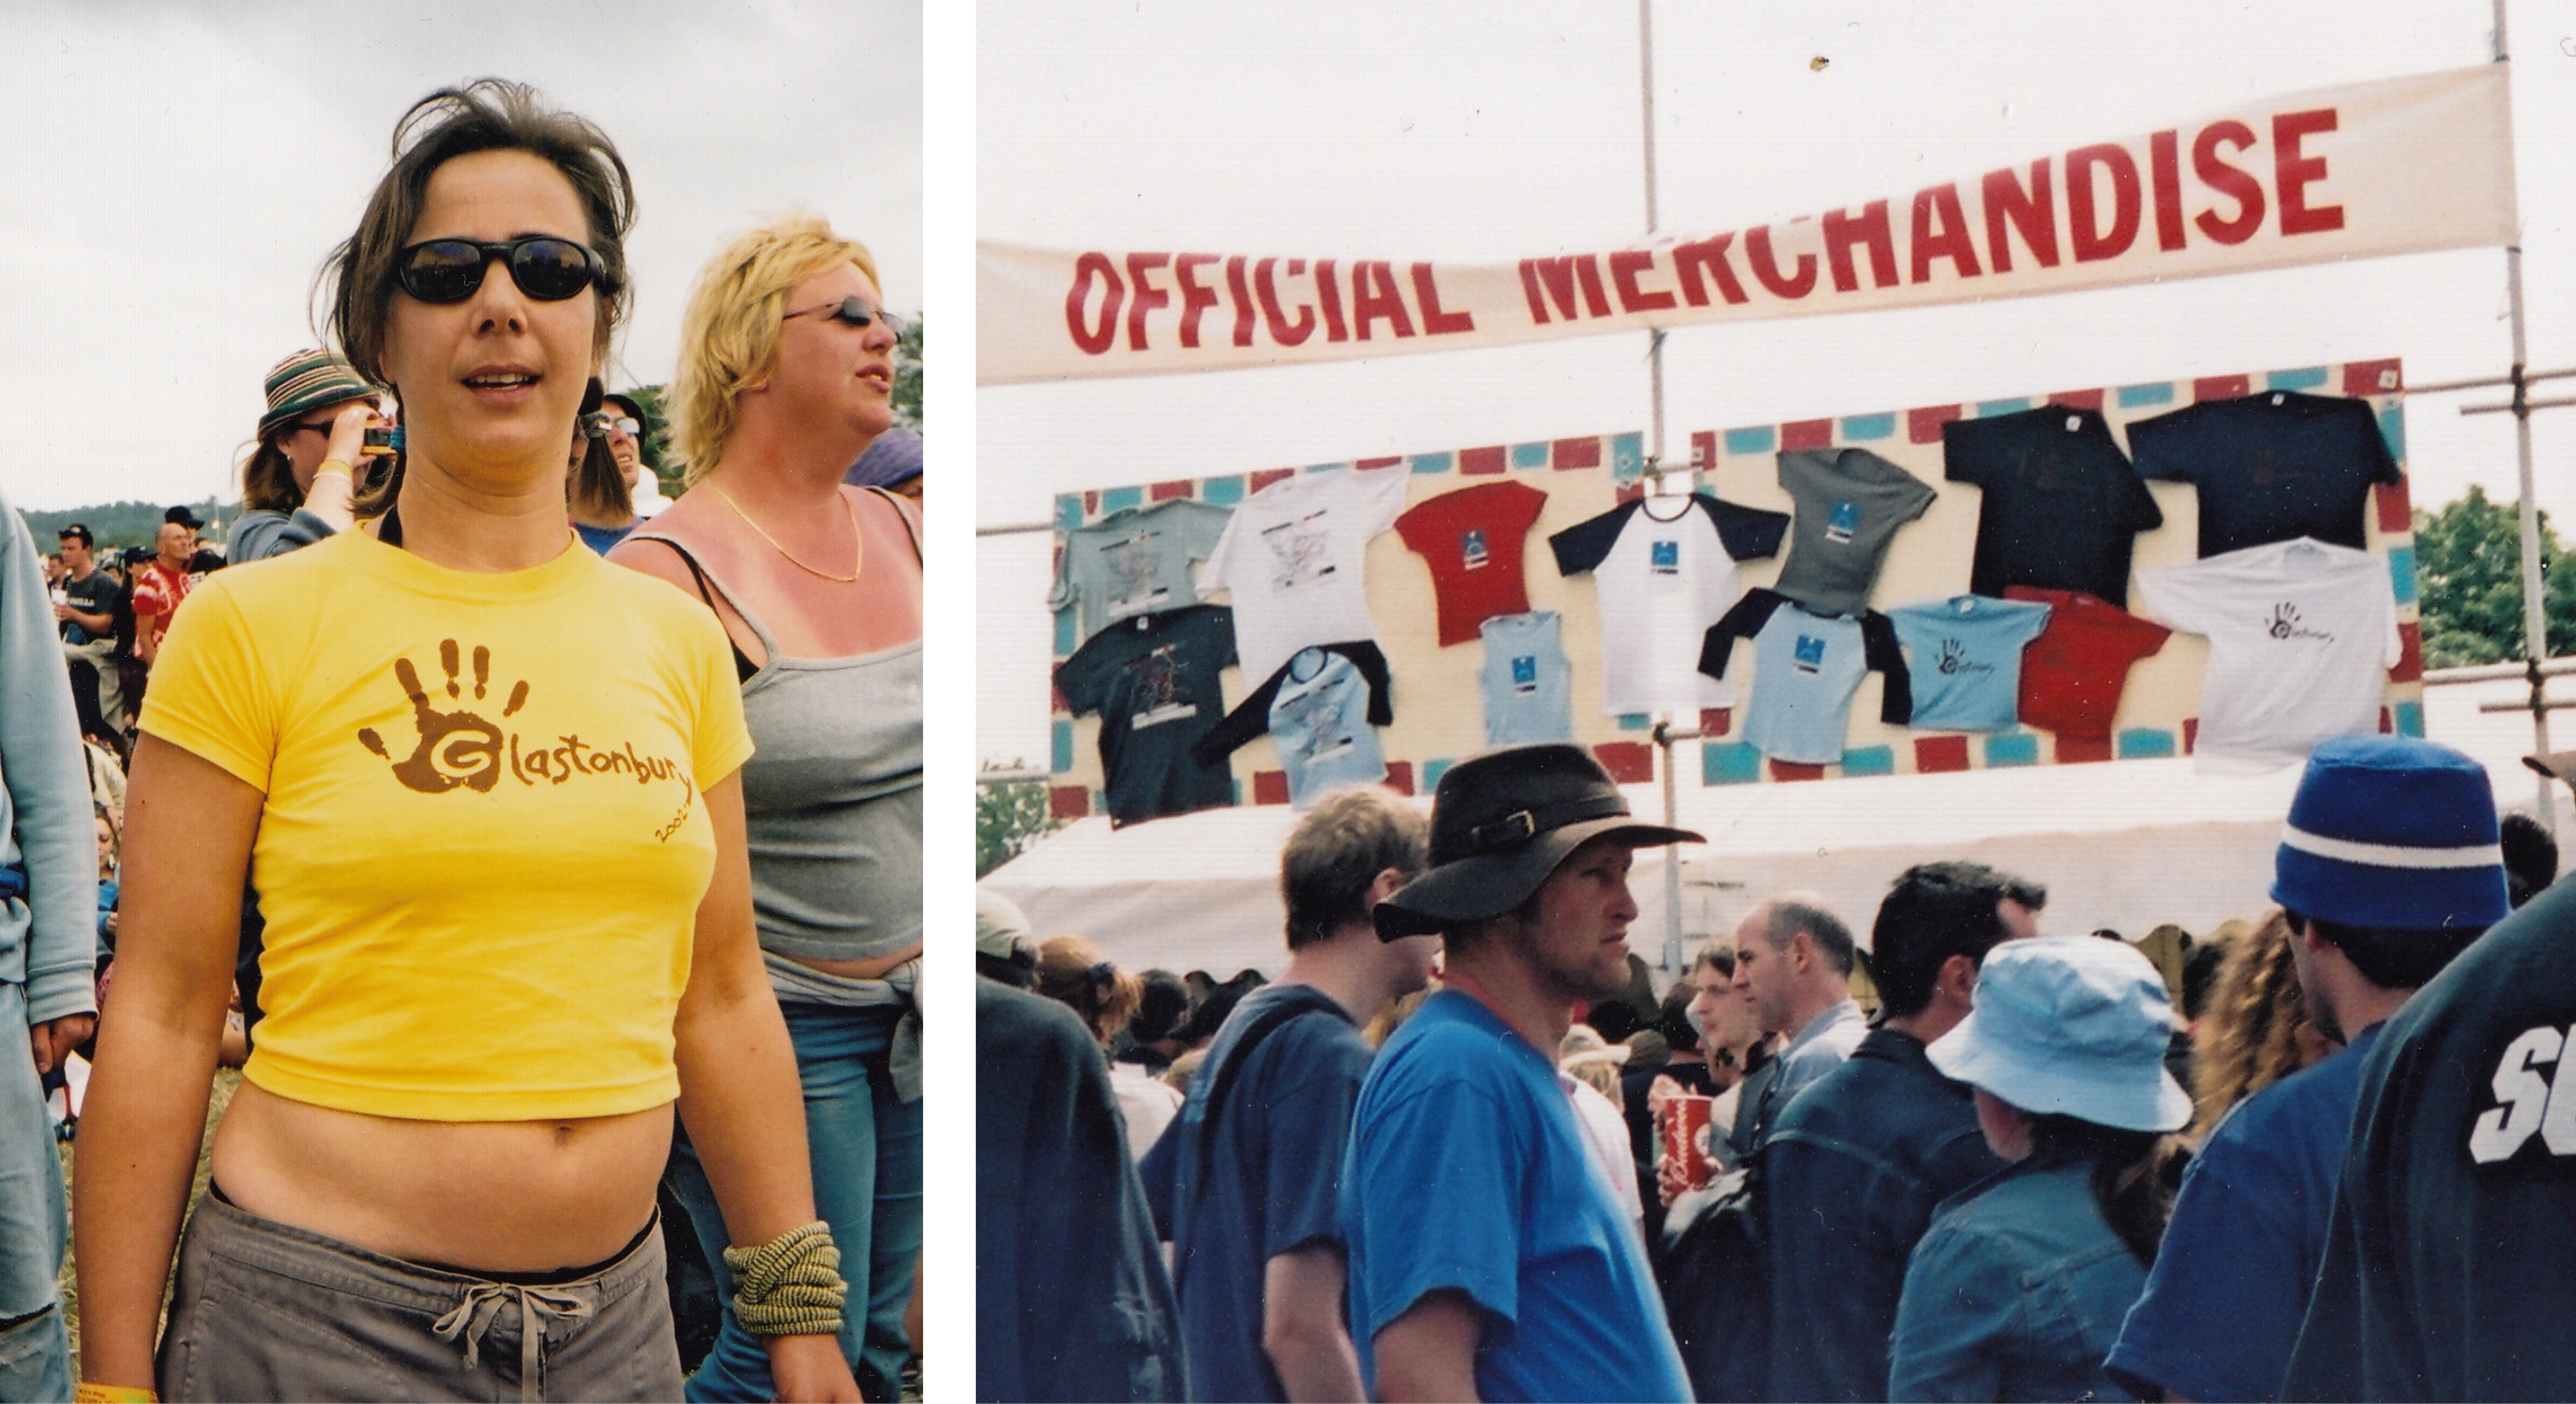 Glastonbury 2002 designs